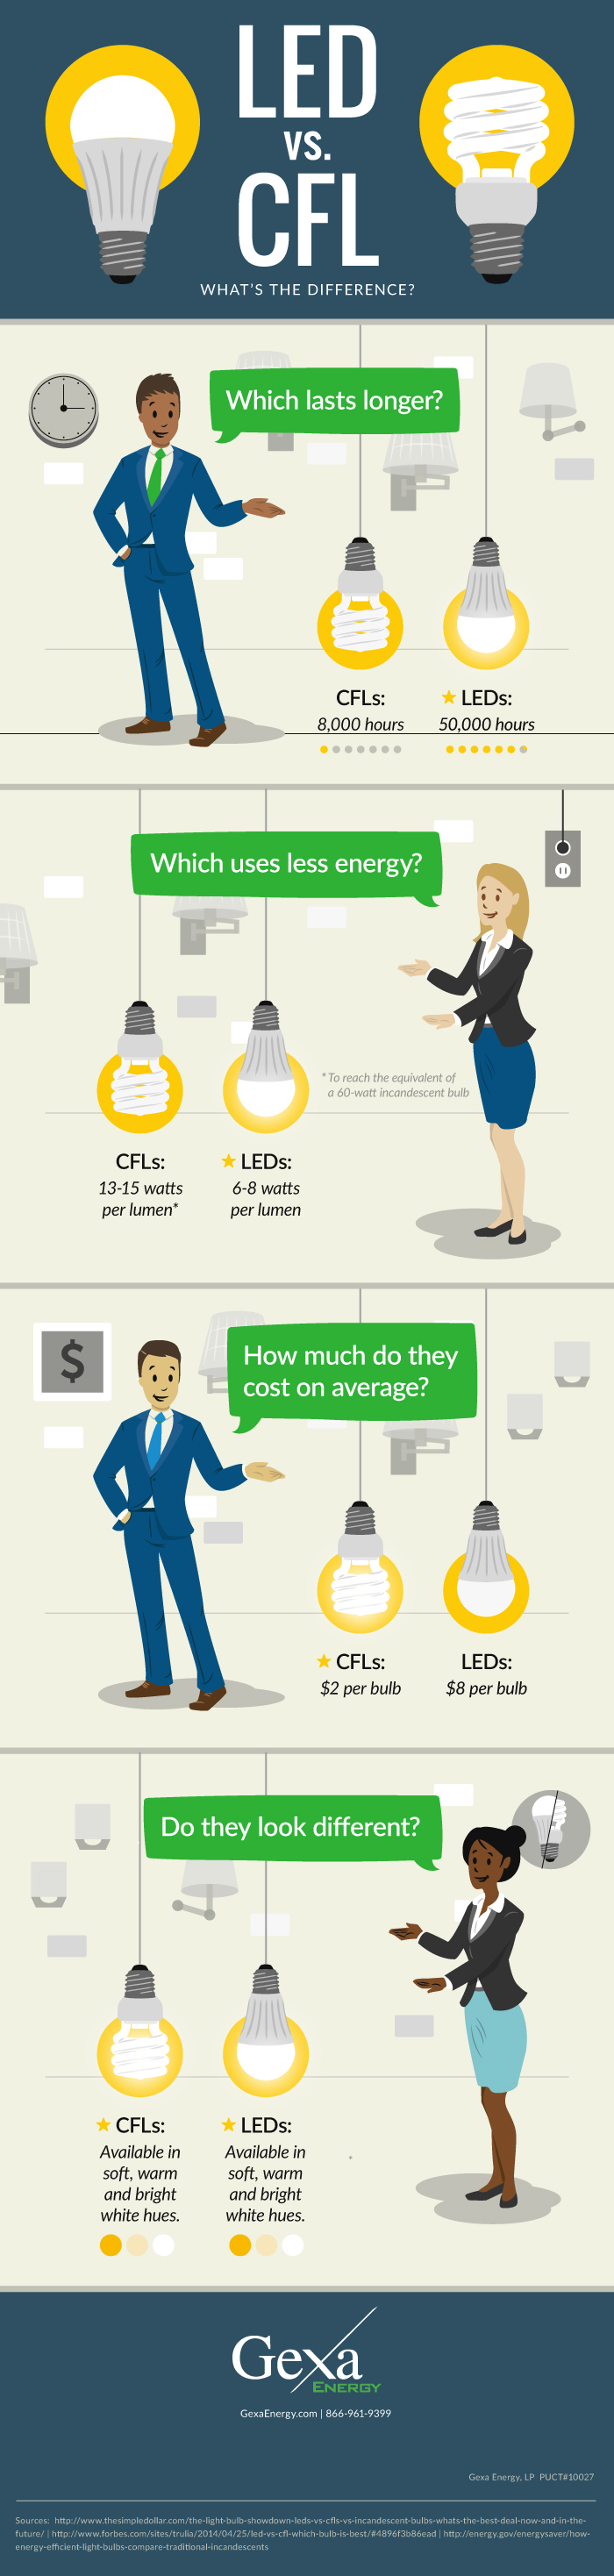 Both LEDs and CFLs offer significant energy savings. How do you decide between the two?